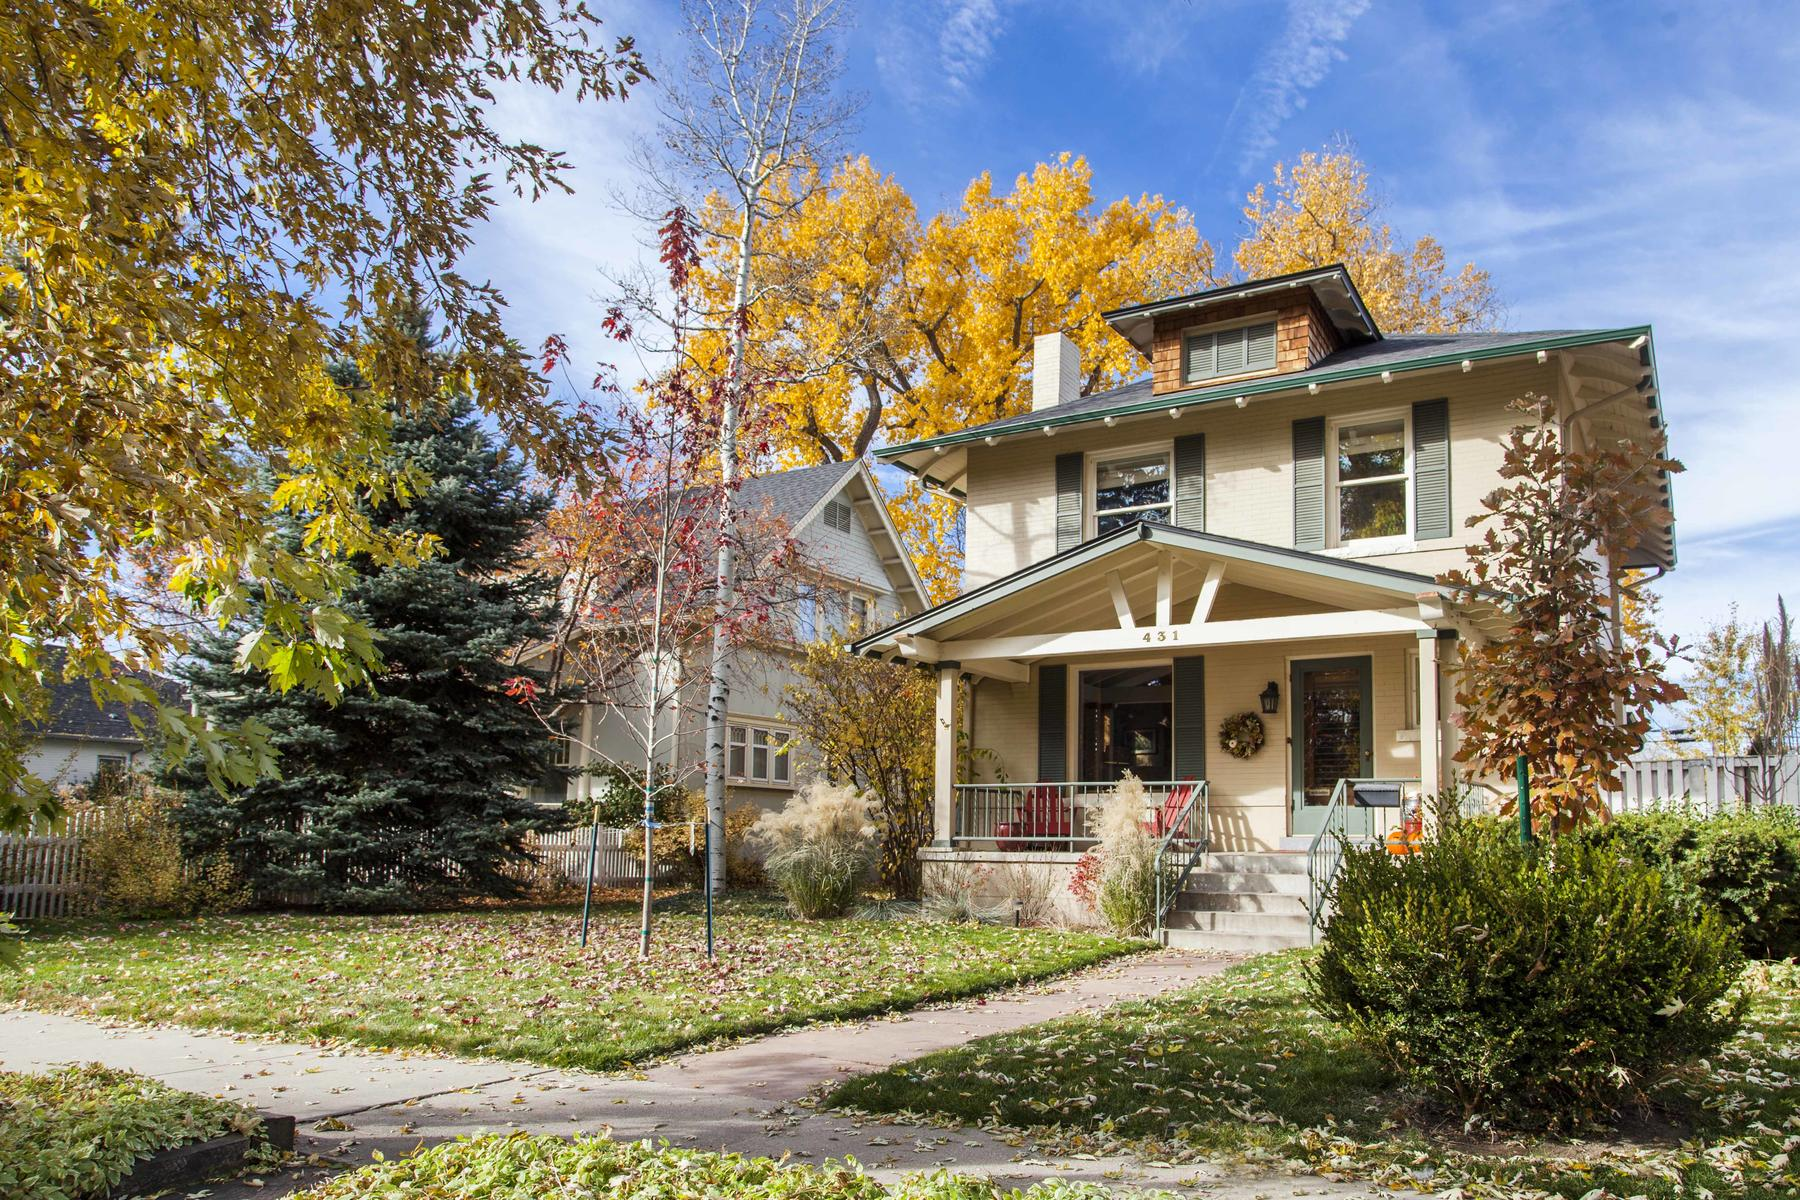 Single Family Home for Active at Wonderful Colors Inside And Out 431 N Marion St Denver, Colorado 80218 United States